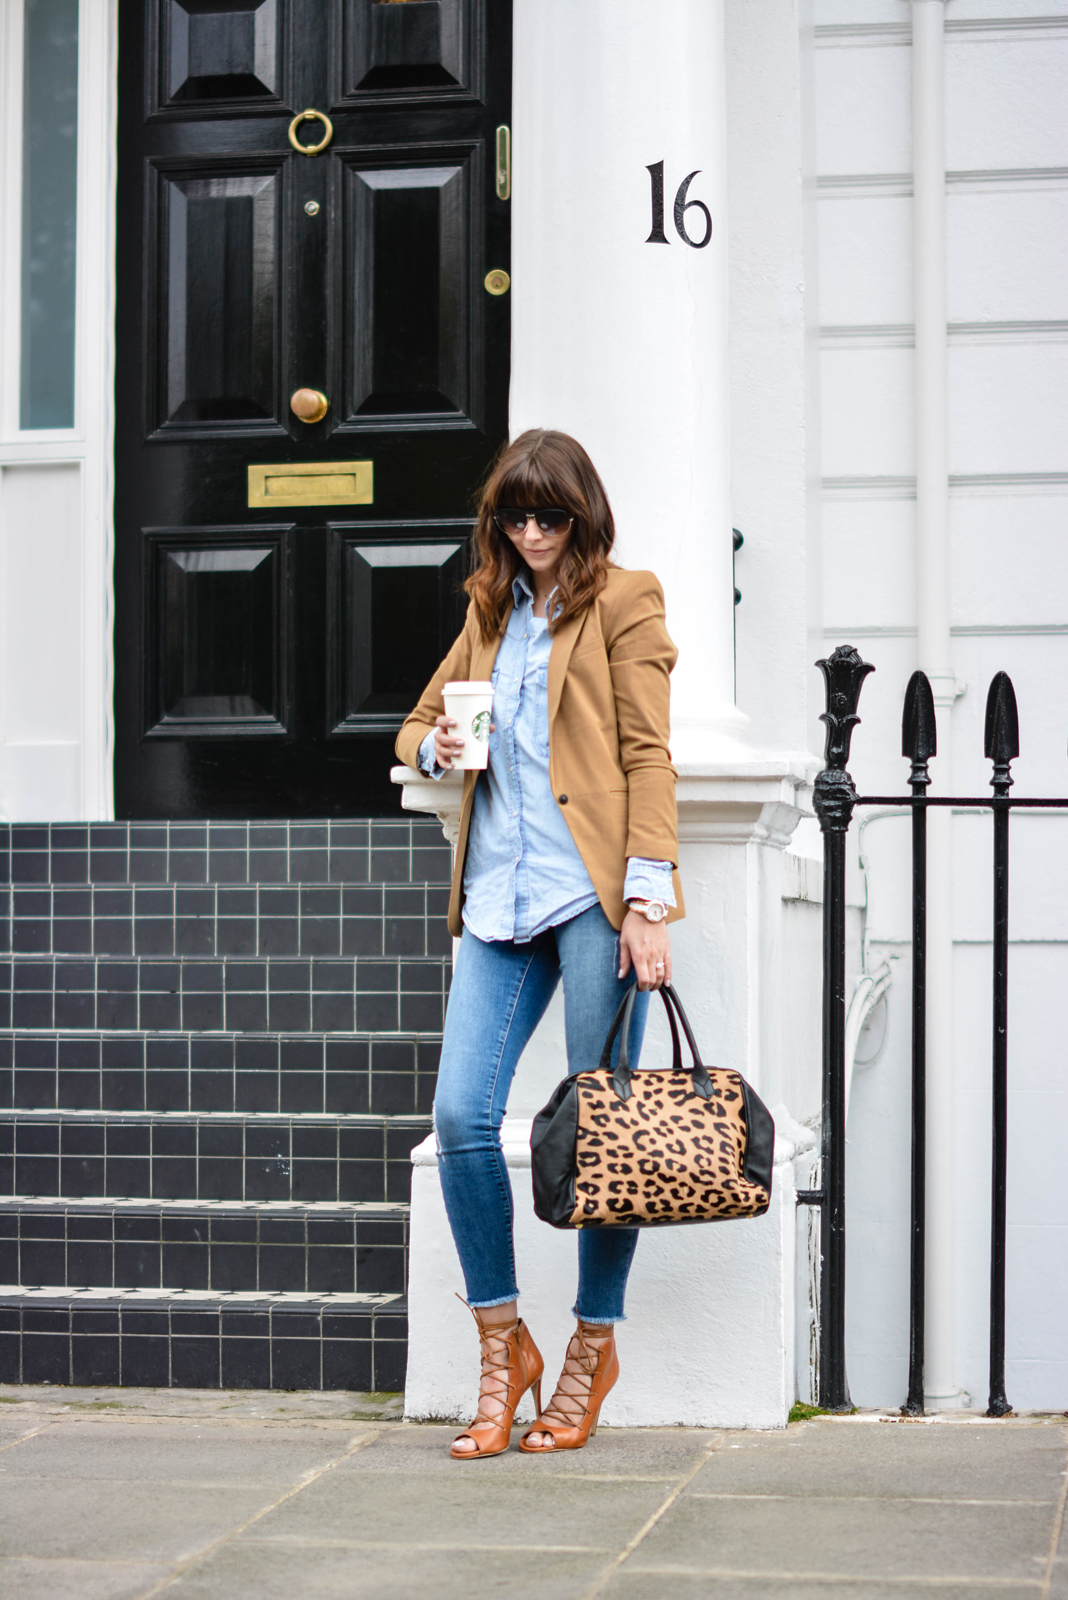 EJSTYLE - Emma Hill, Sante Shoes tan leather lace up sandals, raw hem ripped River Island skinny jeans, Forever 21 Camel blazer, Denim shirt, Leopard print ponyskin leather bag, double denim outfit